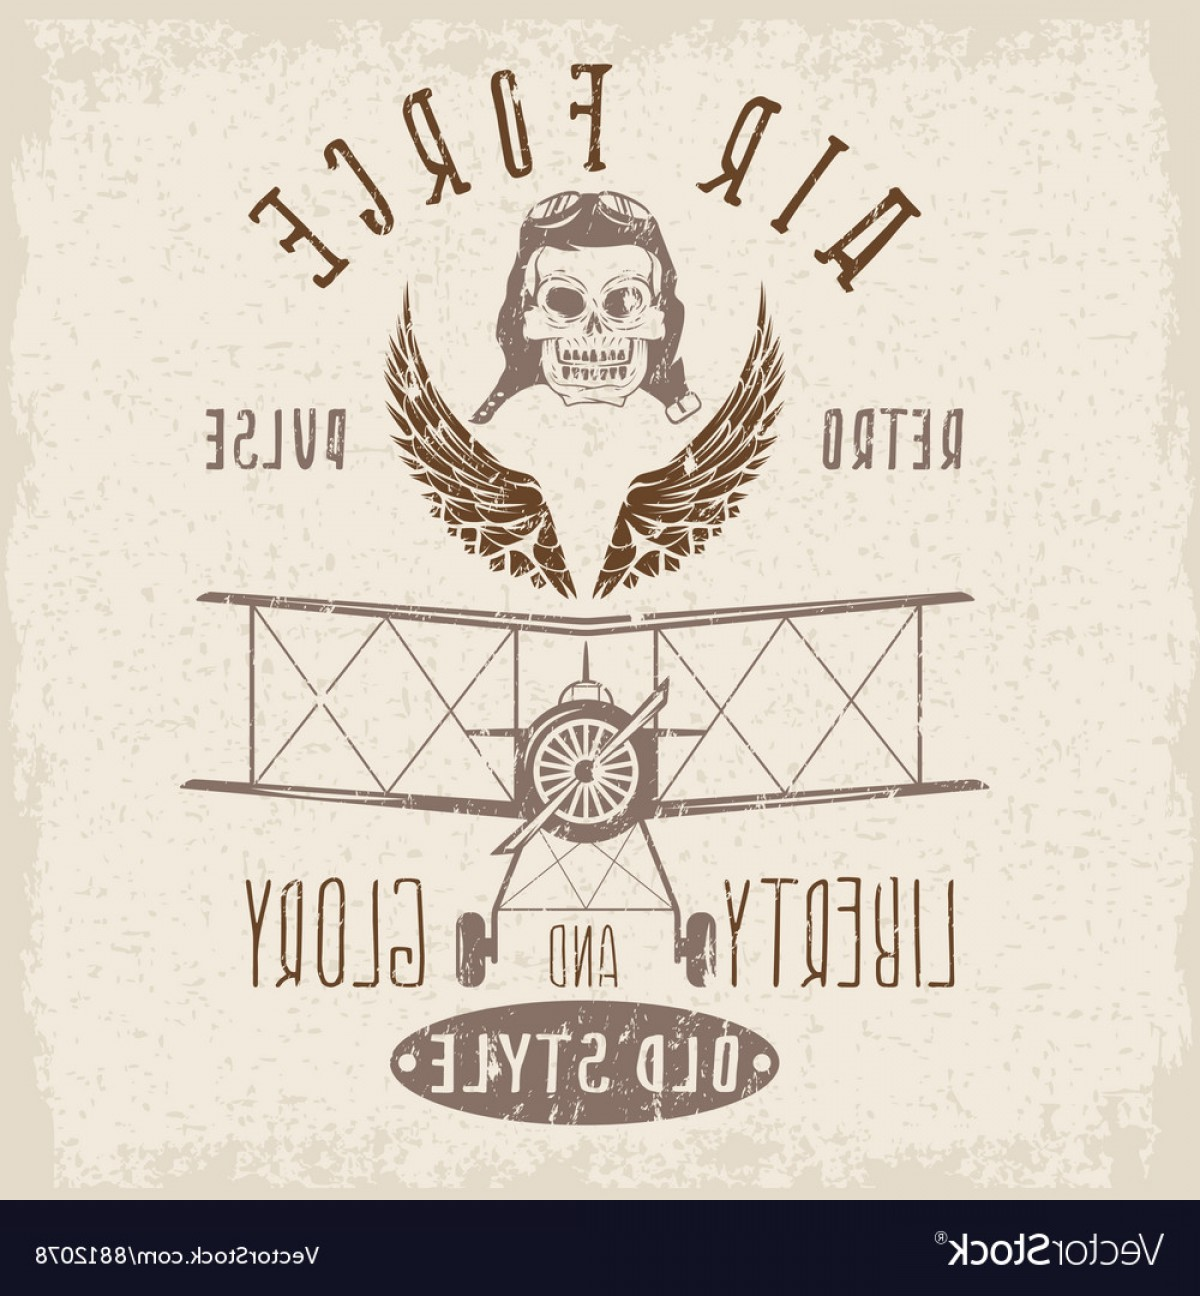 Army Aviator Wings Vector: Retro Aviation Grunge Design With Skullairplane Vector